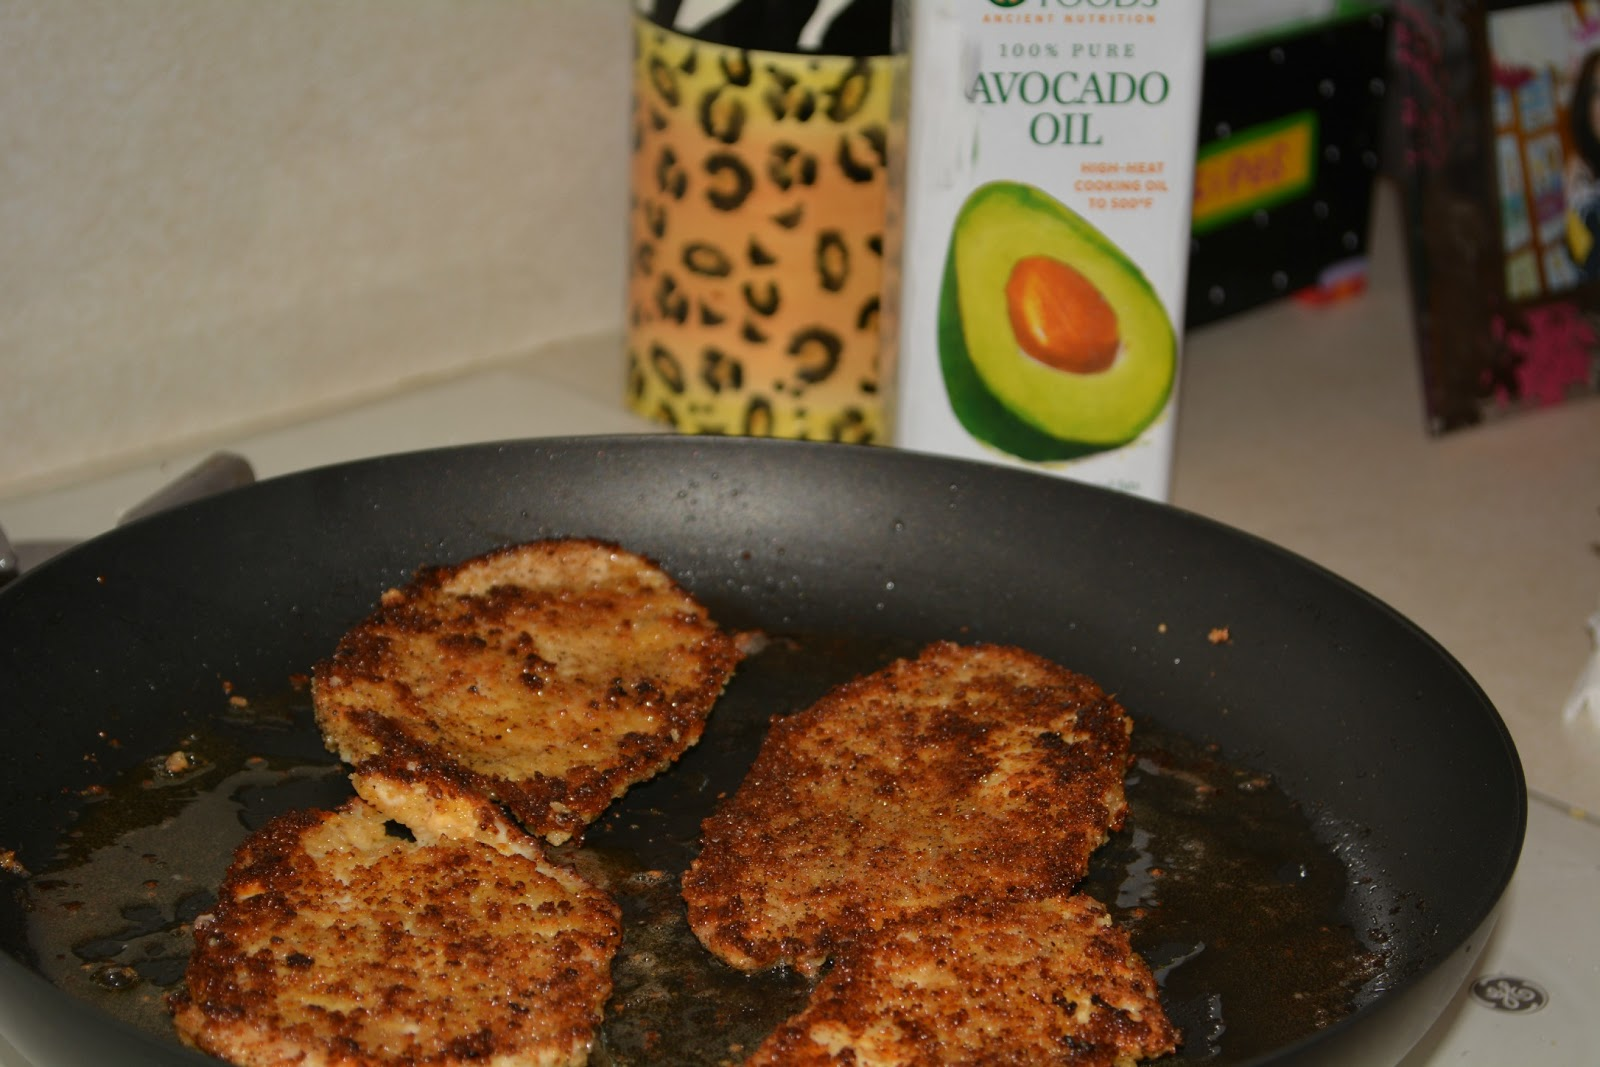 Chicken Pan Fried In Avocado Oil Topped With Pesto And